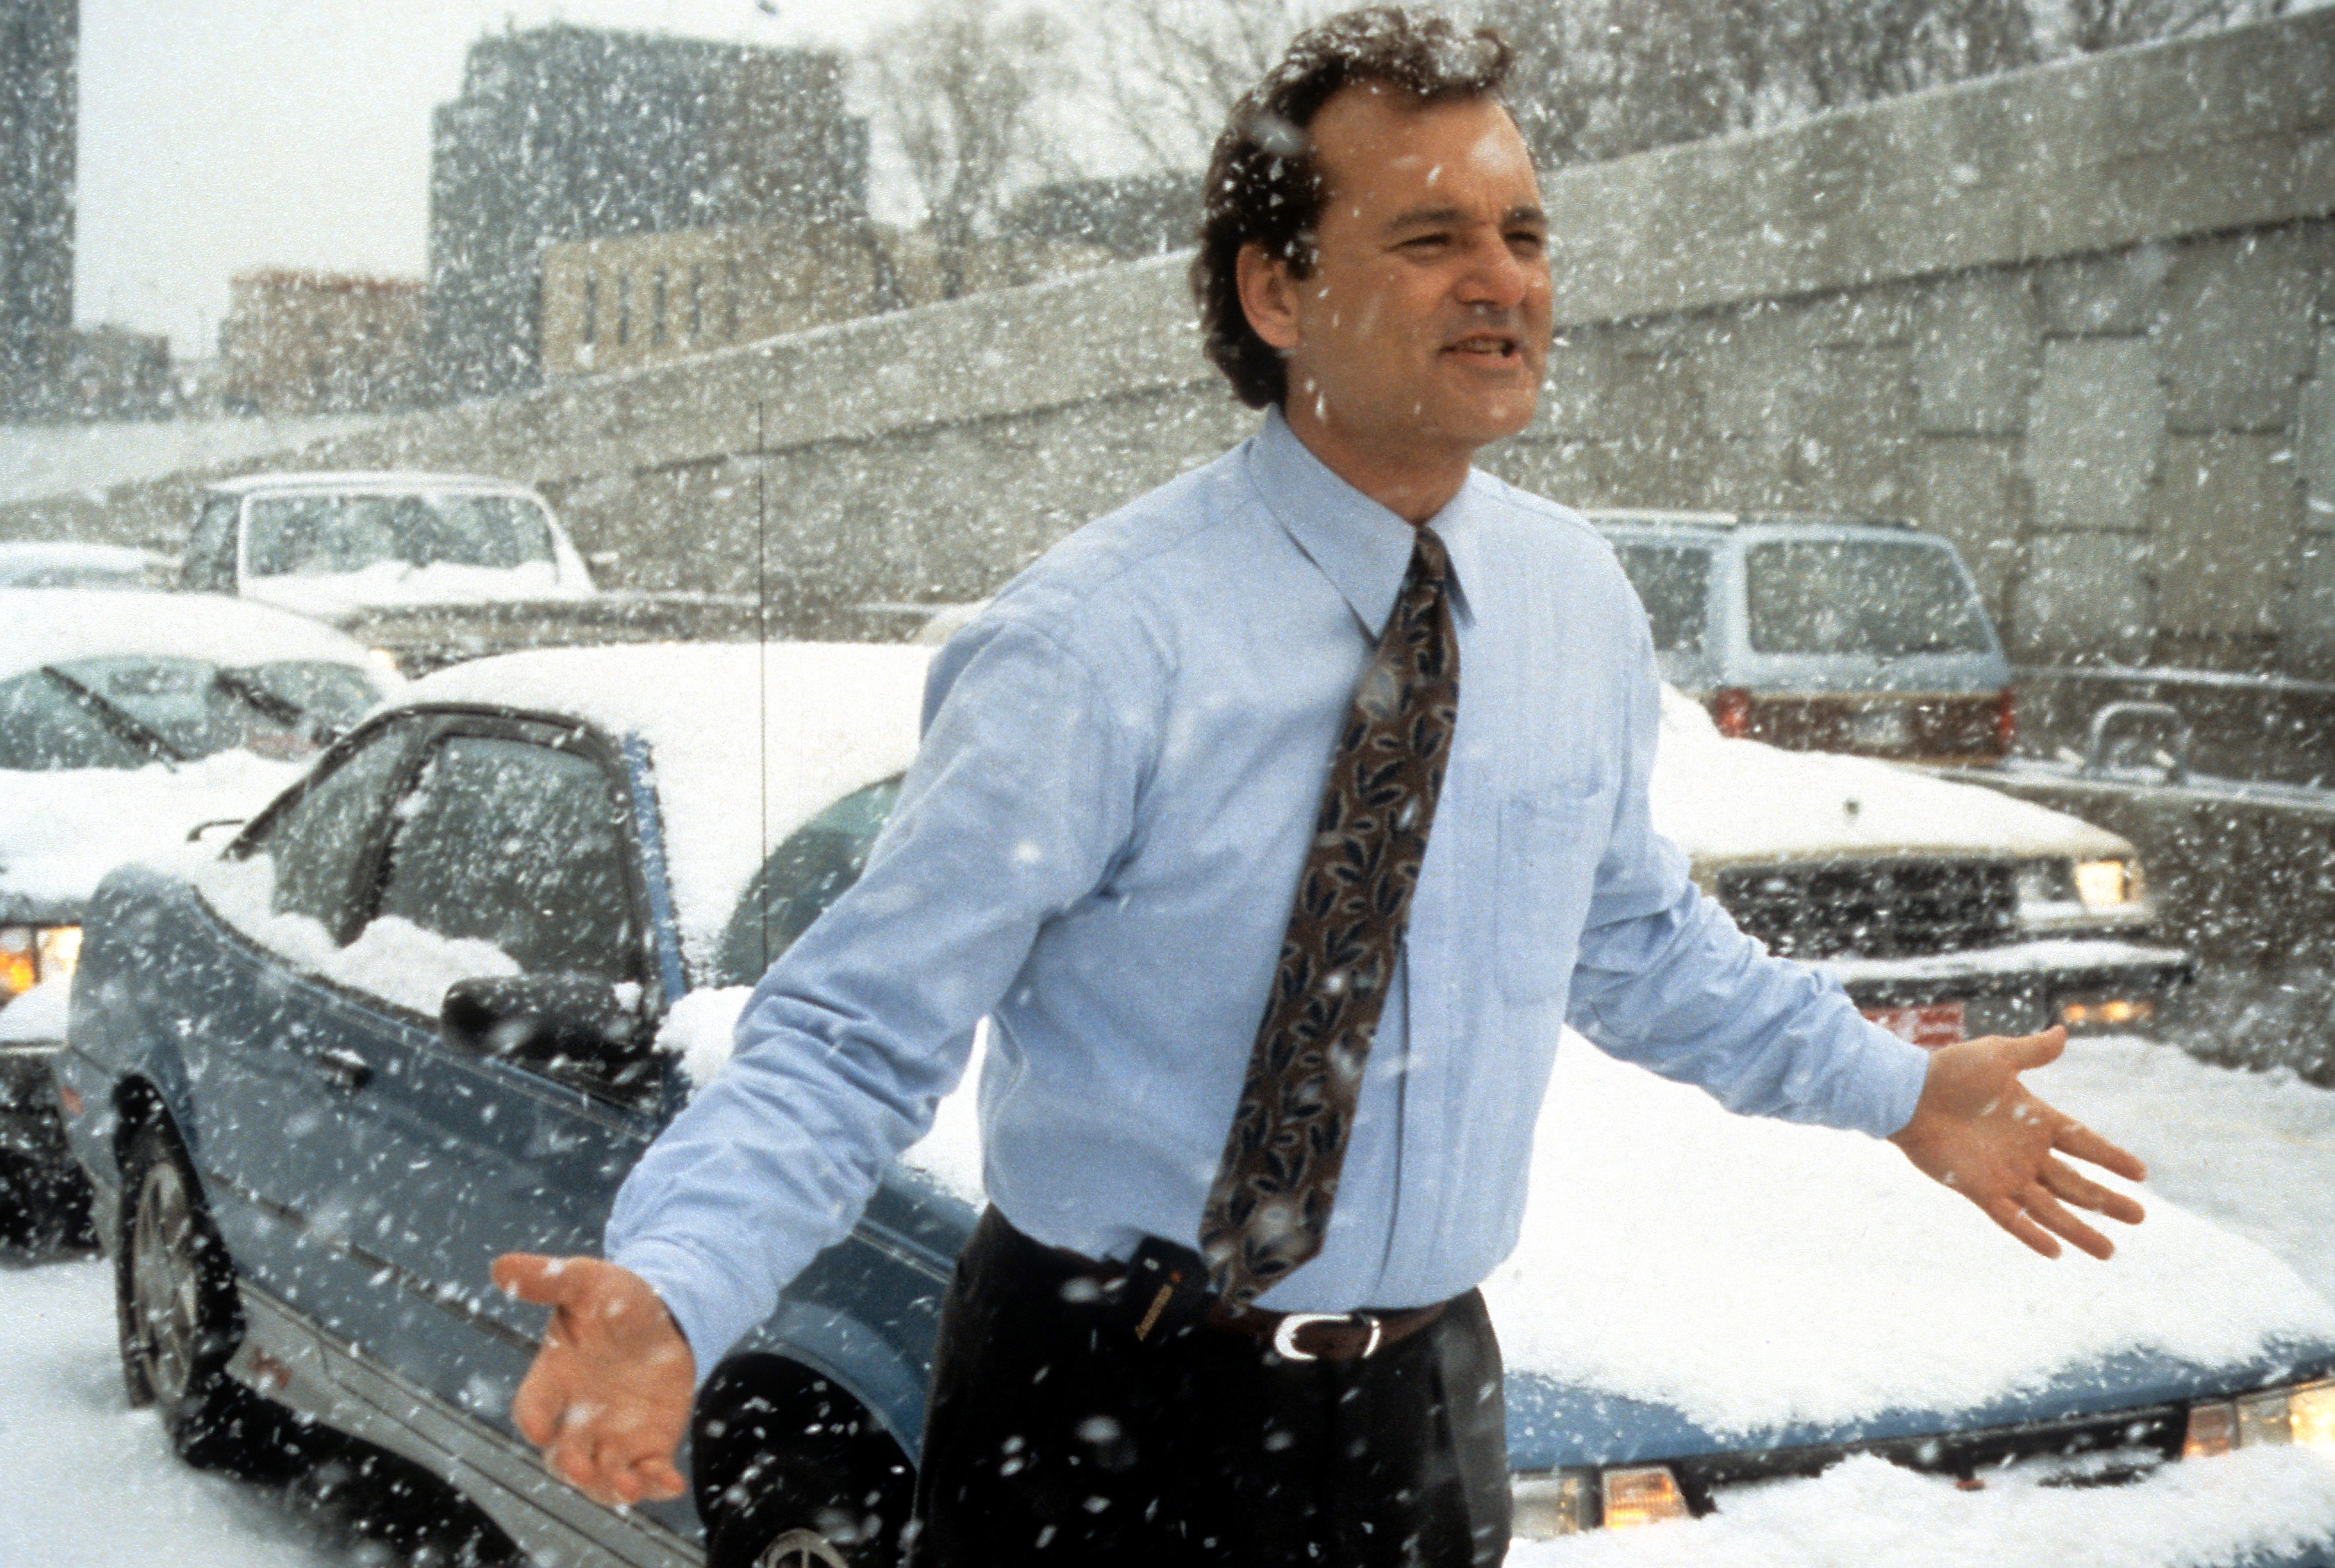 Bill Murray runs through the snow in a scene from the film Groundhog Day in 1993.